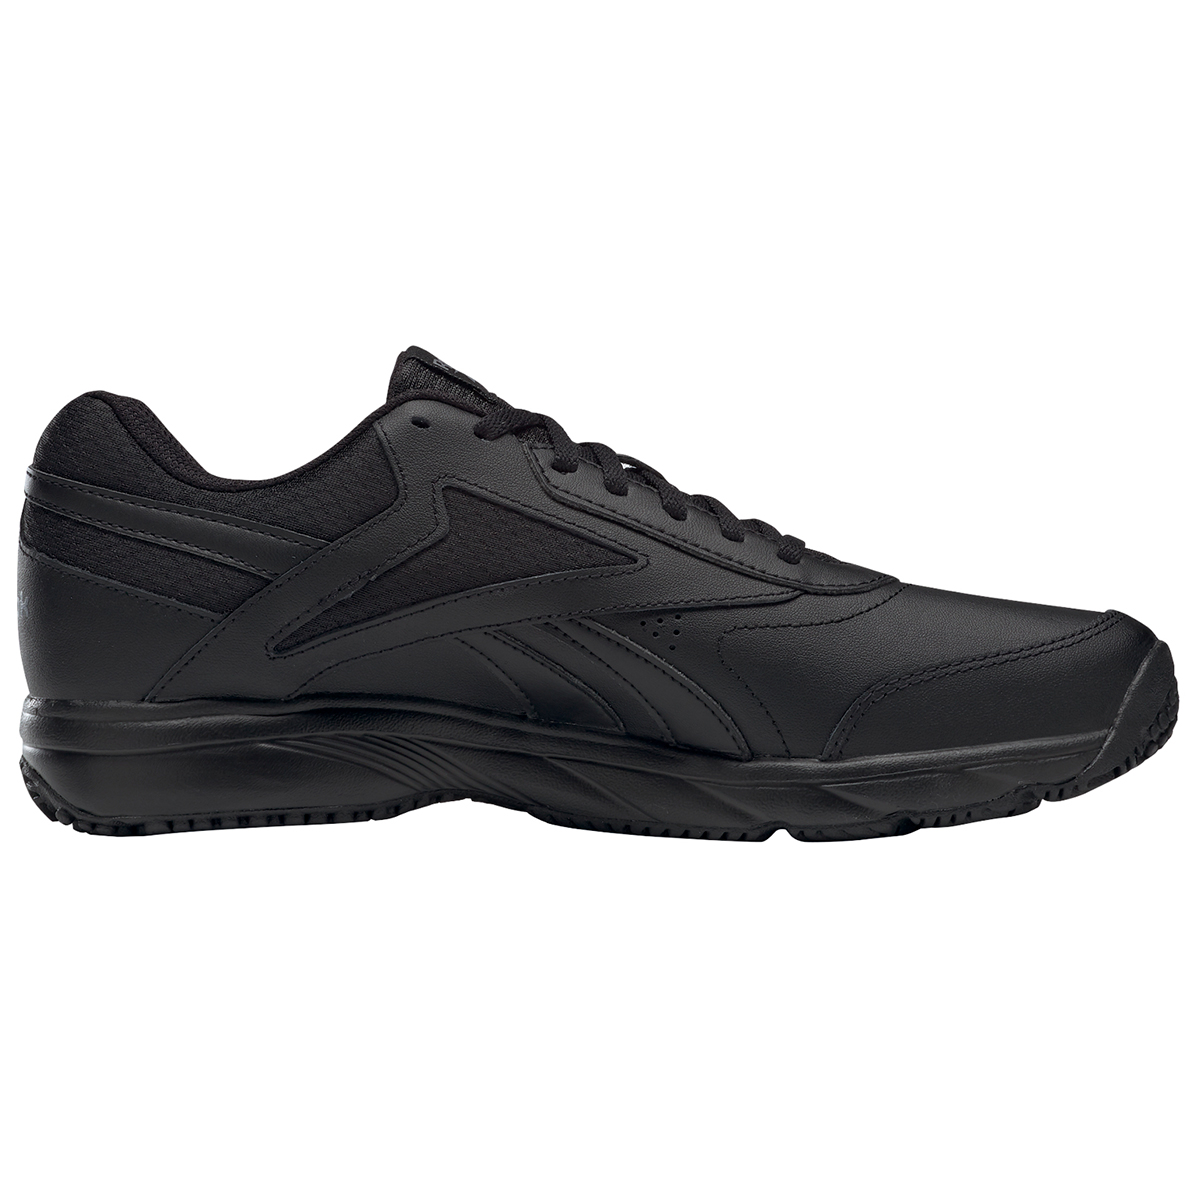 Reebok Men's Work N Cushion 4.0 Walking Shoe - Black, 10